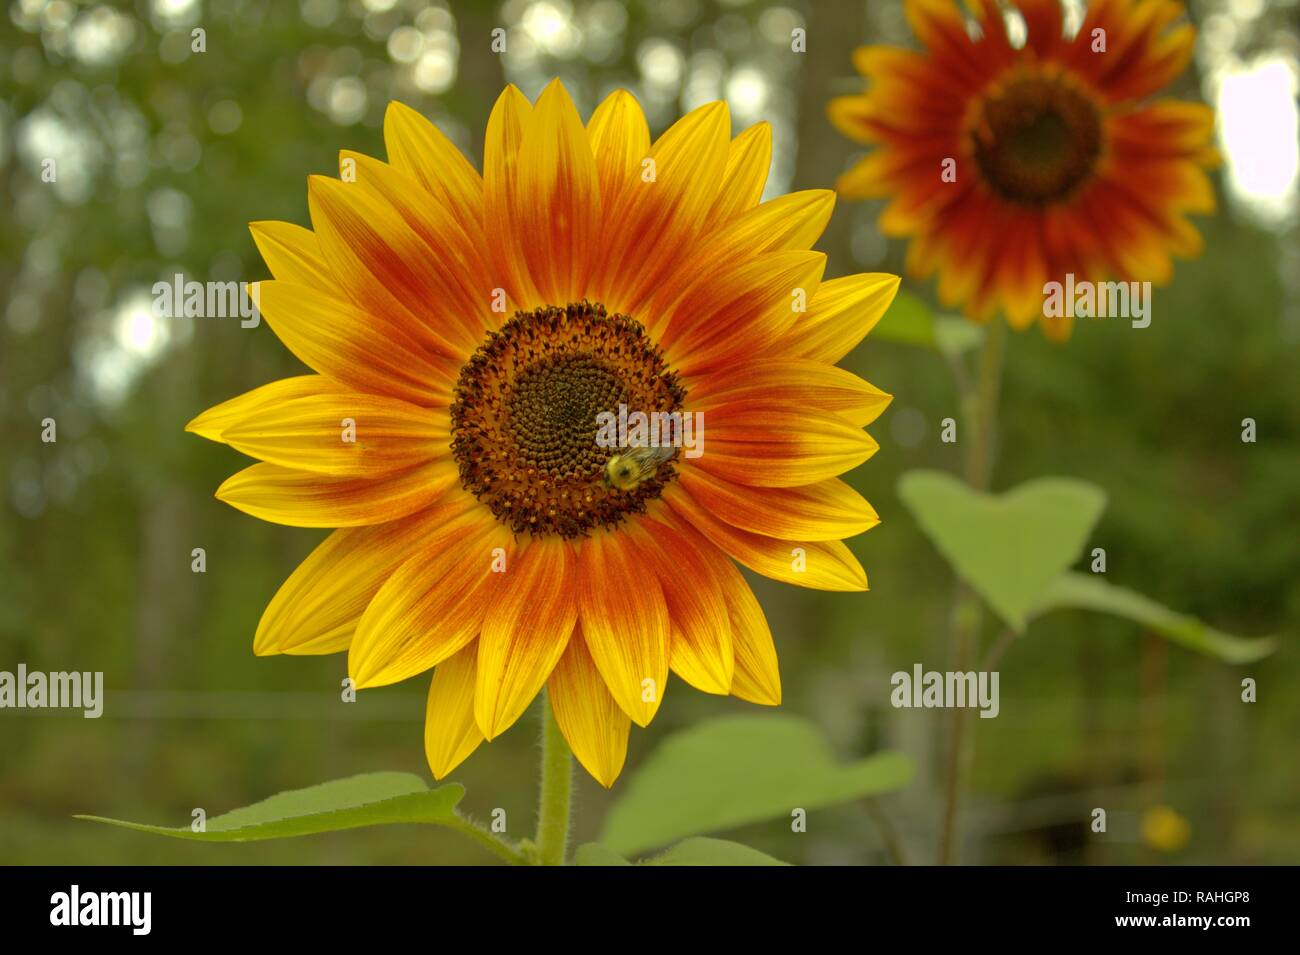 Bumblebee On A Sunflower - Stock Image